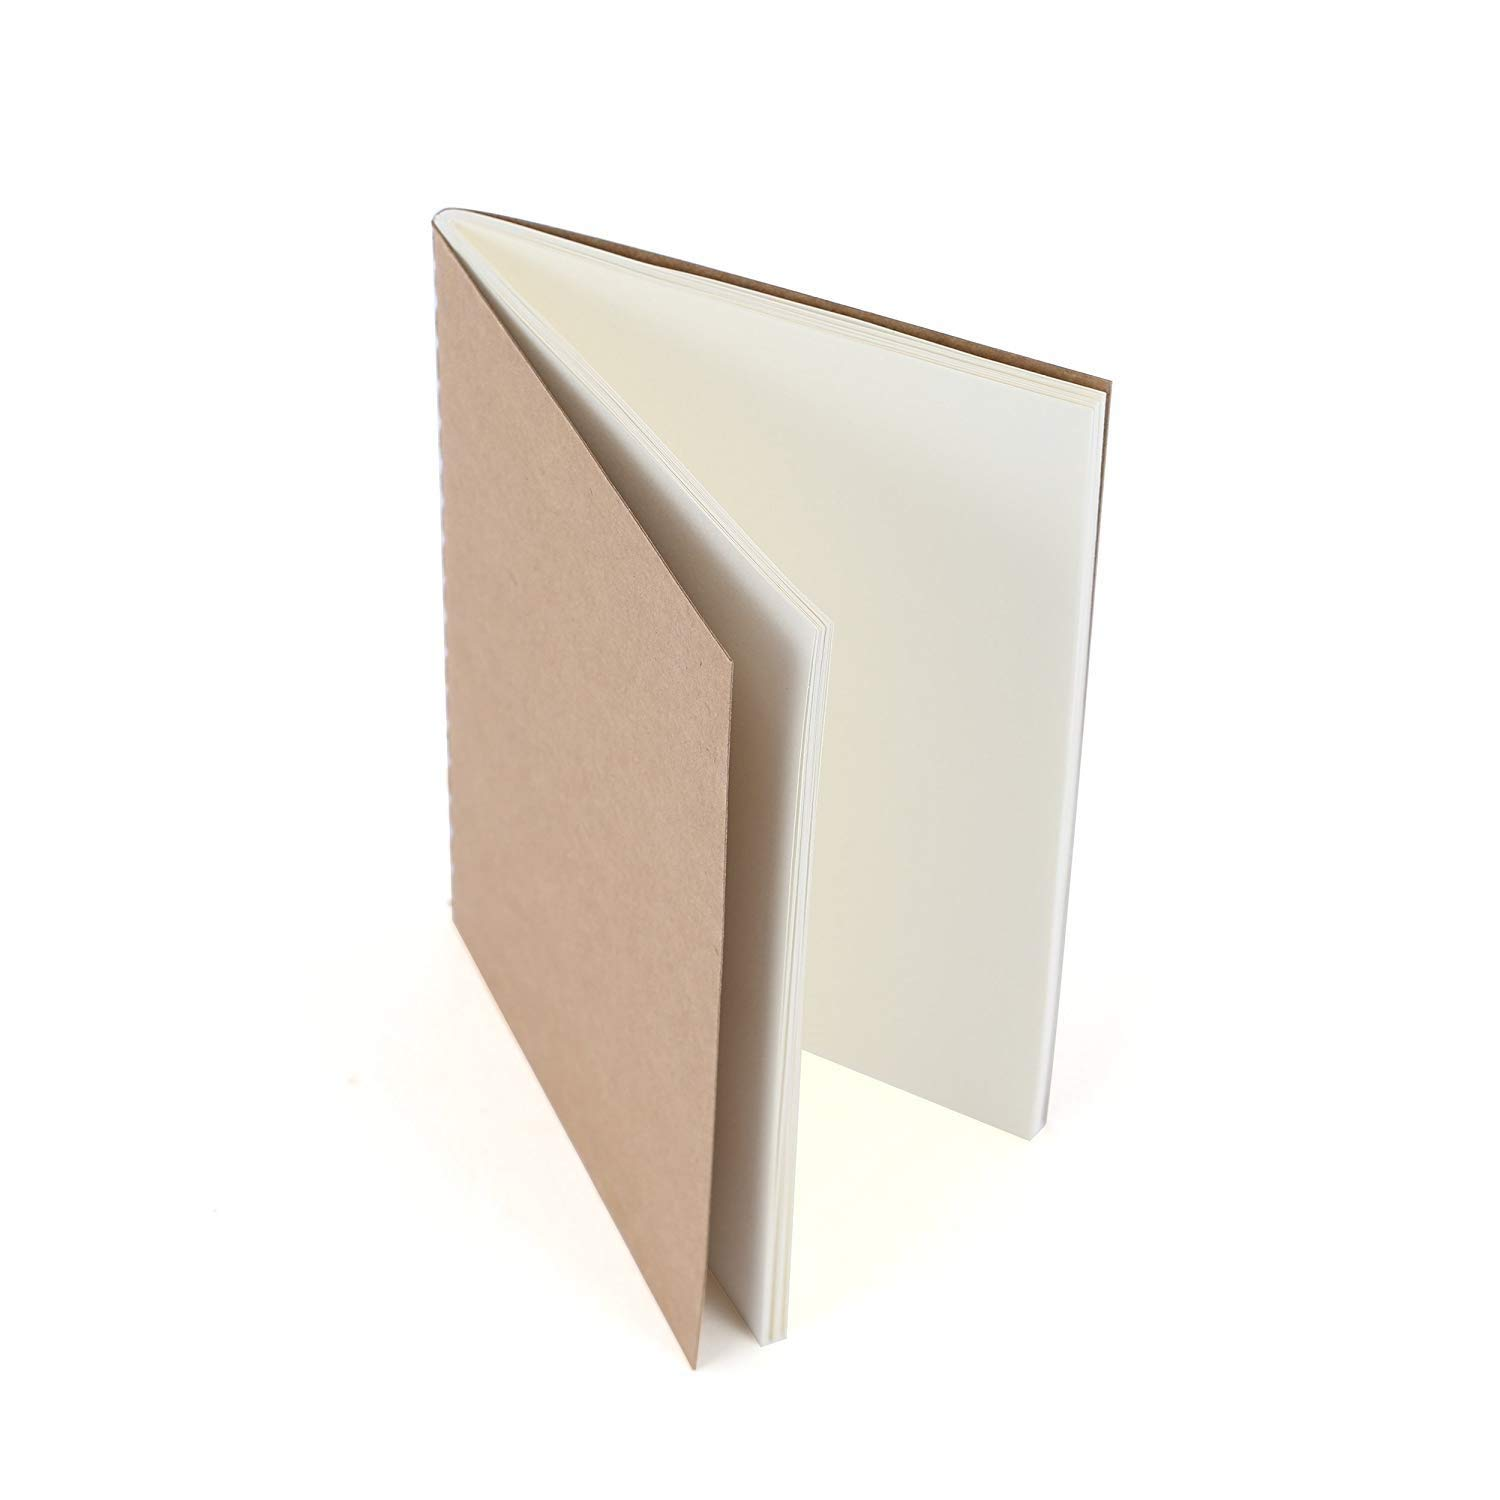 3 Pack 3.5x 5 Refill Paper Passport Size for Journal Drawing Sketching Note Taking